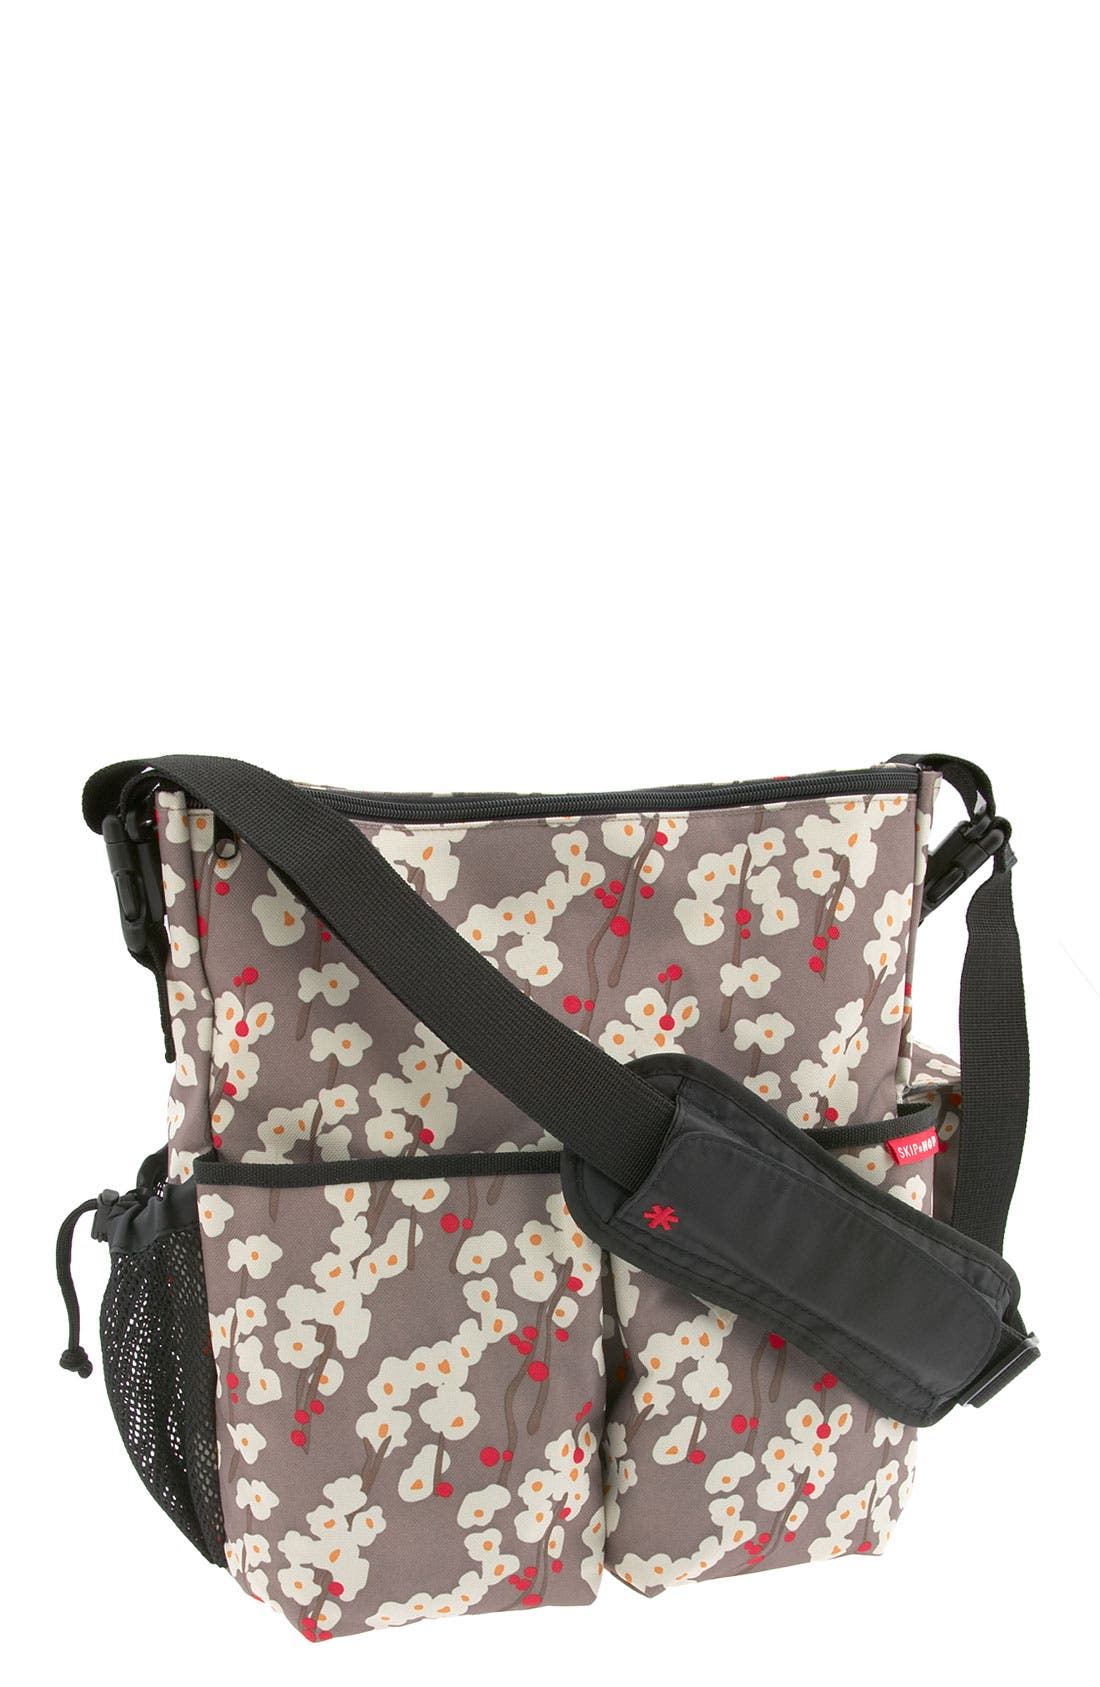 Main Image - Skip Hop 'Duo' Diaper Bag (Deluxe Edition)